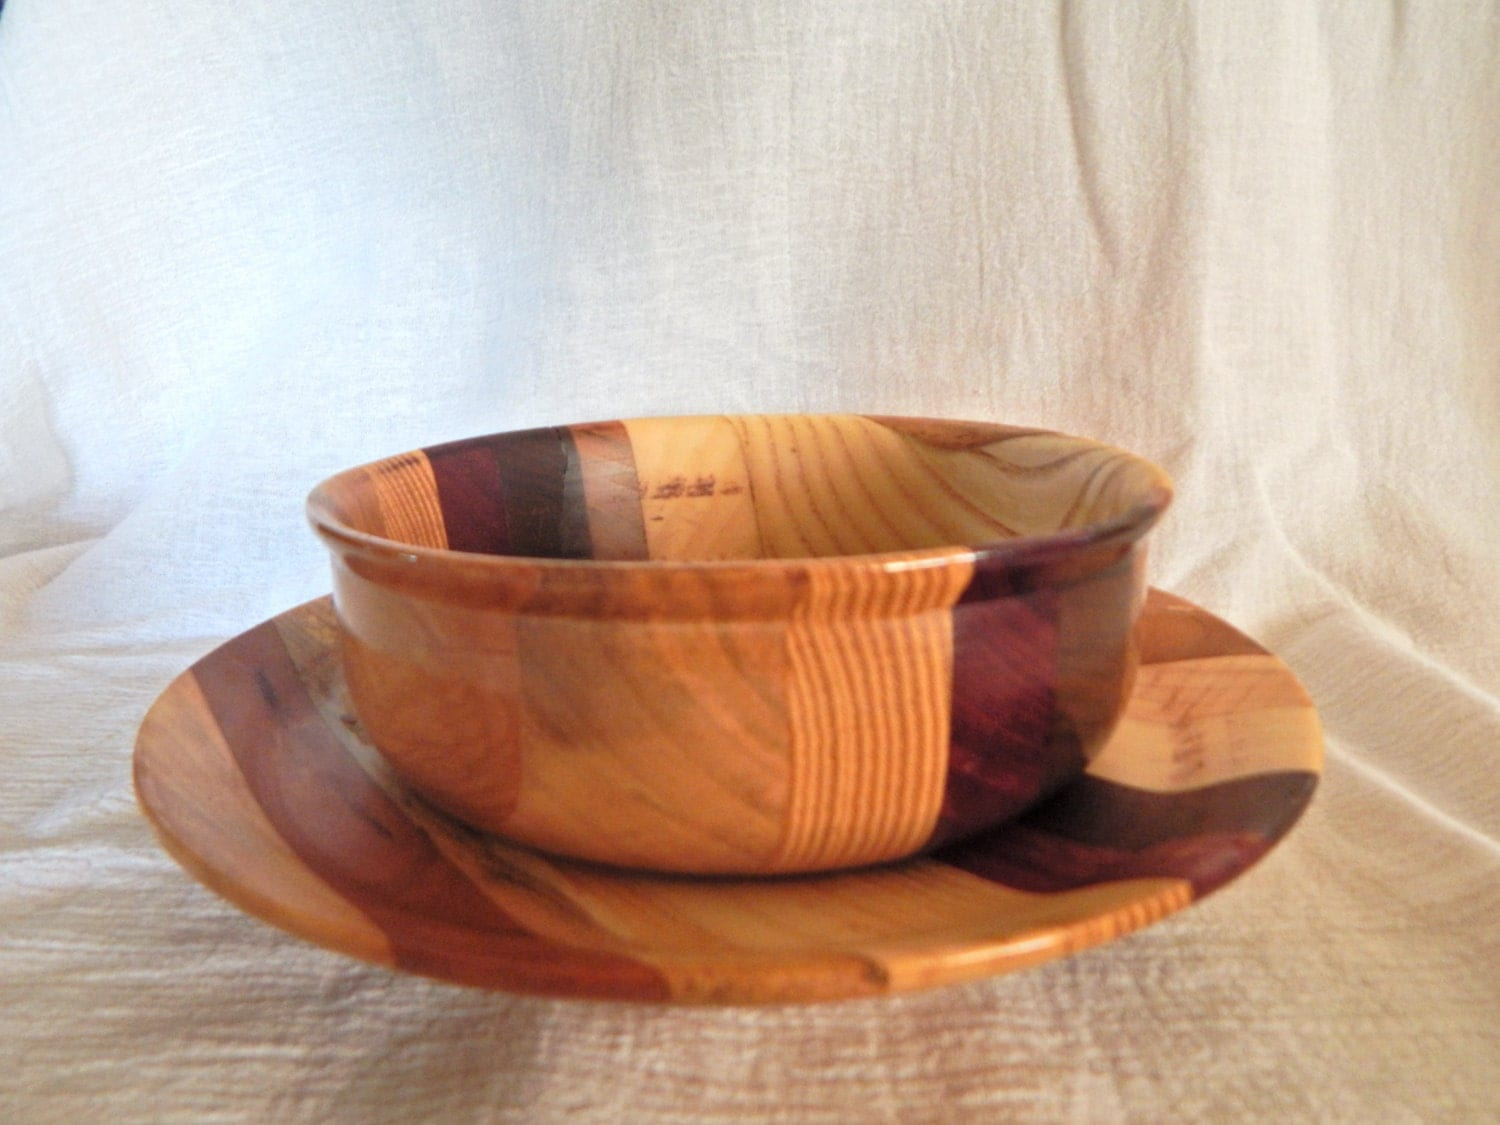 Small Wood Plate and Bowl Sets - Snuggly Monkey |Small Wooden Bowls Saucers